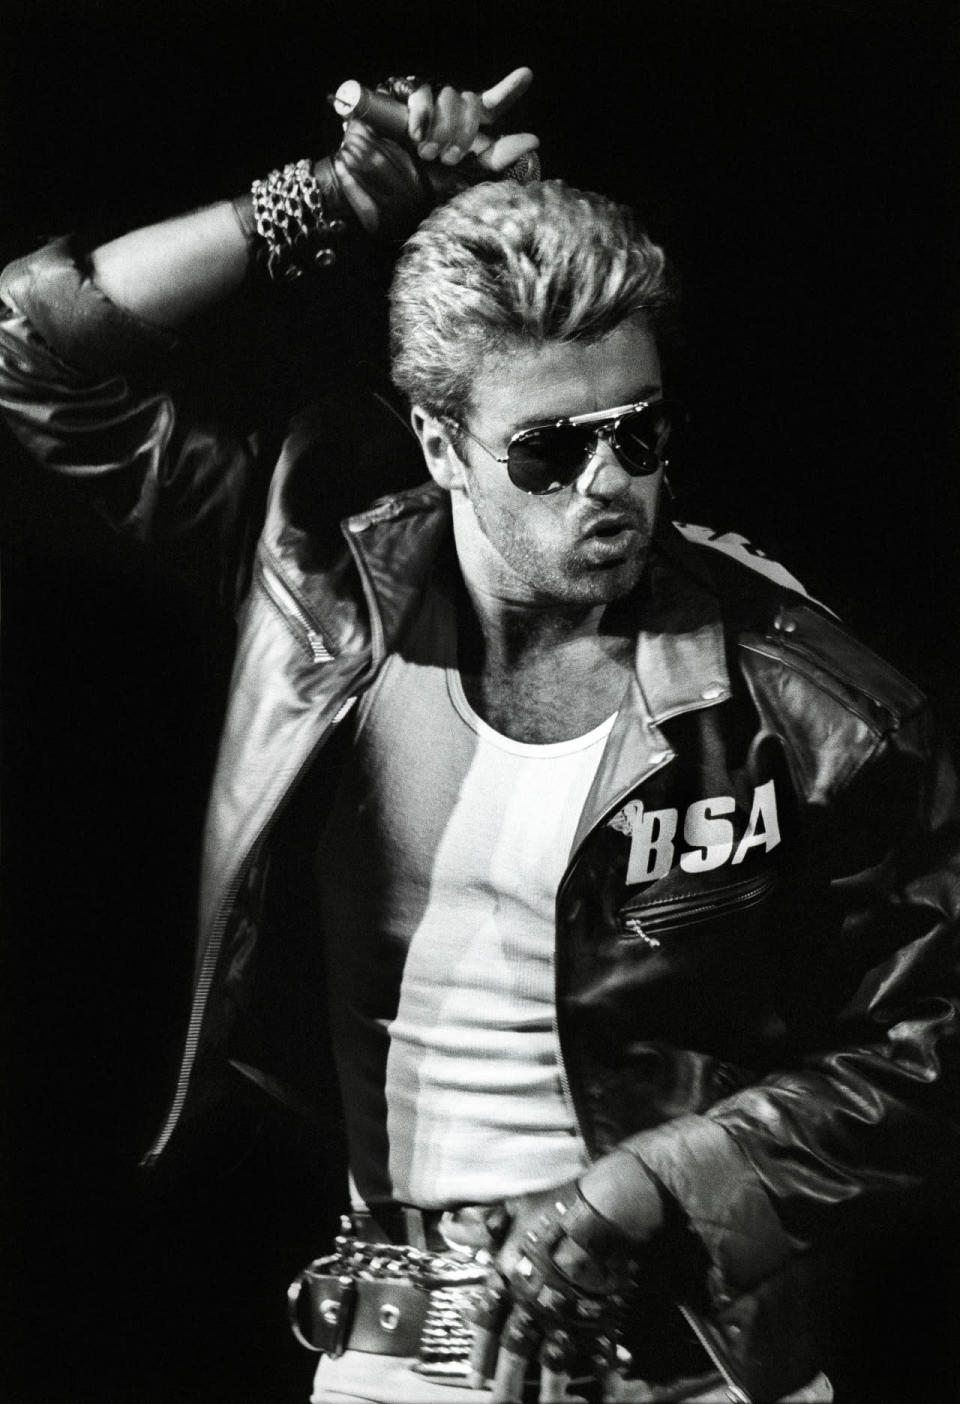 George Michael was a Grammy-winning pop icons known for his groundbreaking solo work and for fronting Wham! in the 1980s. He died on Christmas Day at age 53. (Photo: Redferns)